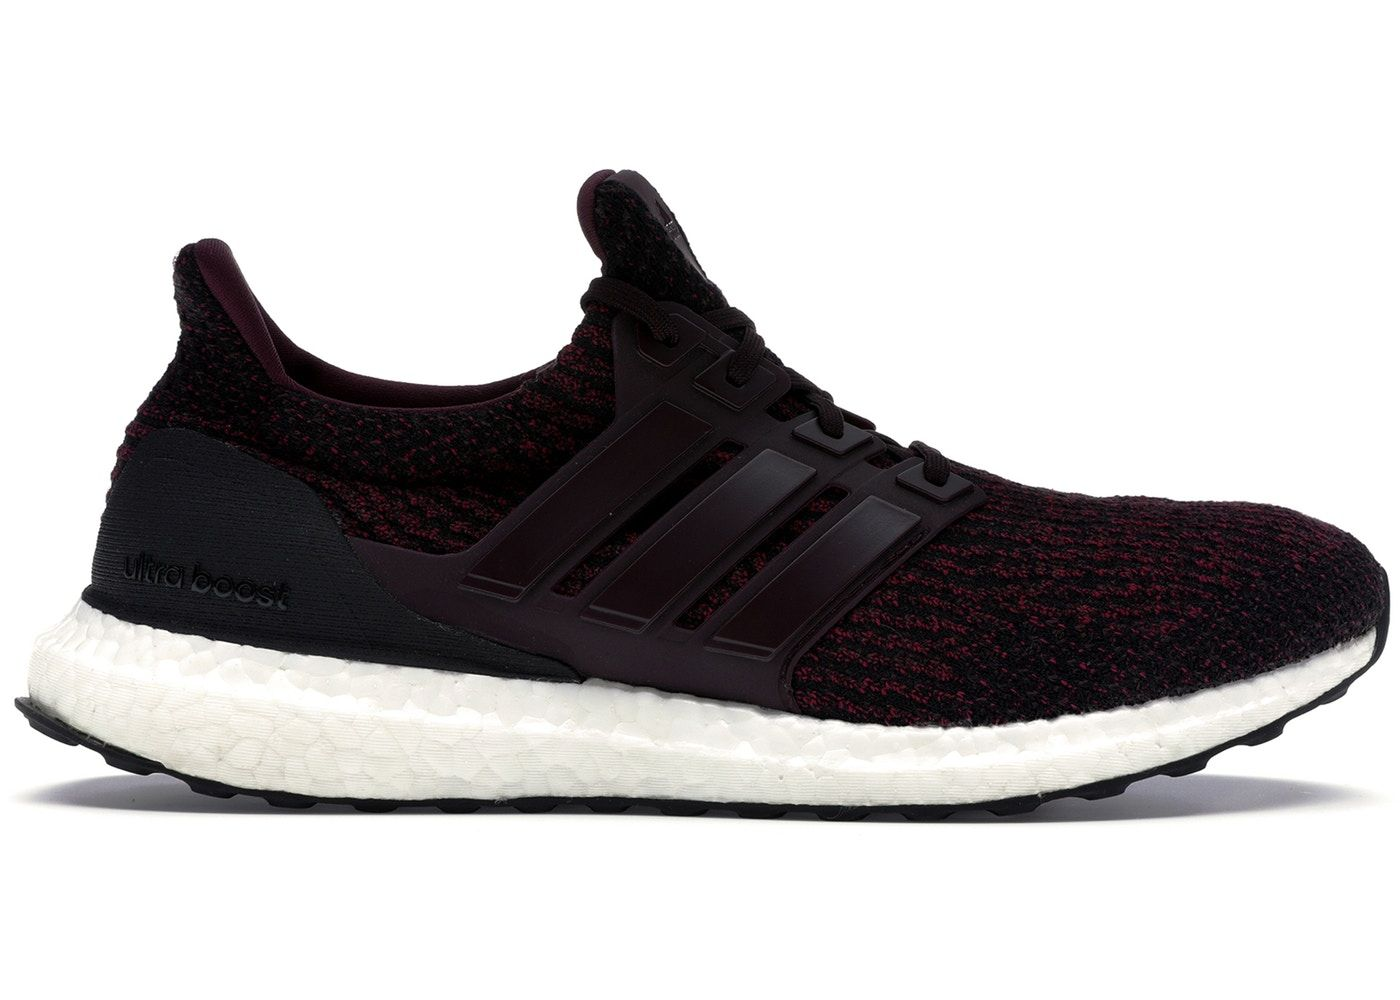 614254c7 Check out the adidas Ultra Boost 3.0 Dark Burgundy available on StockX